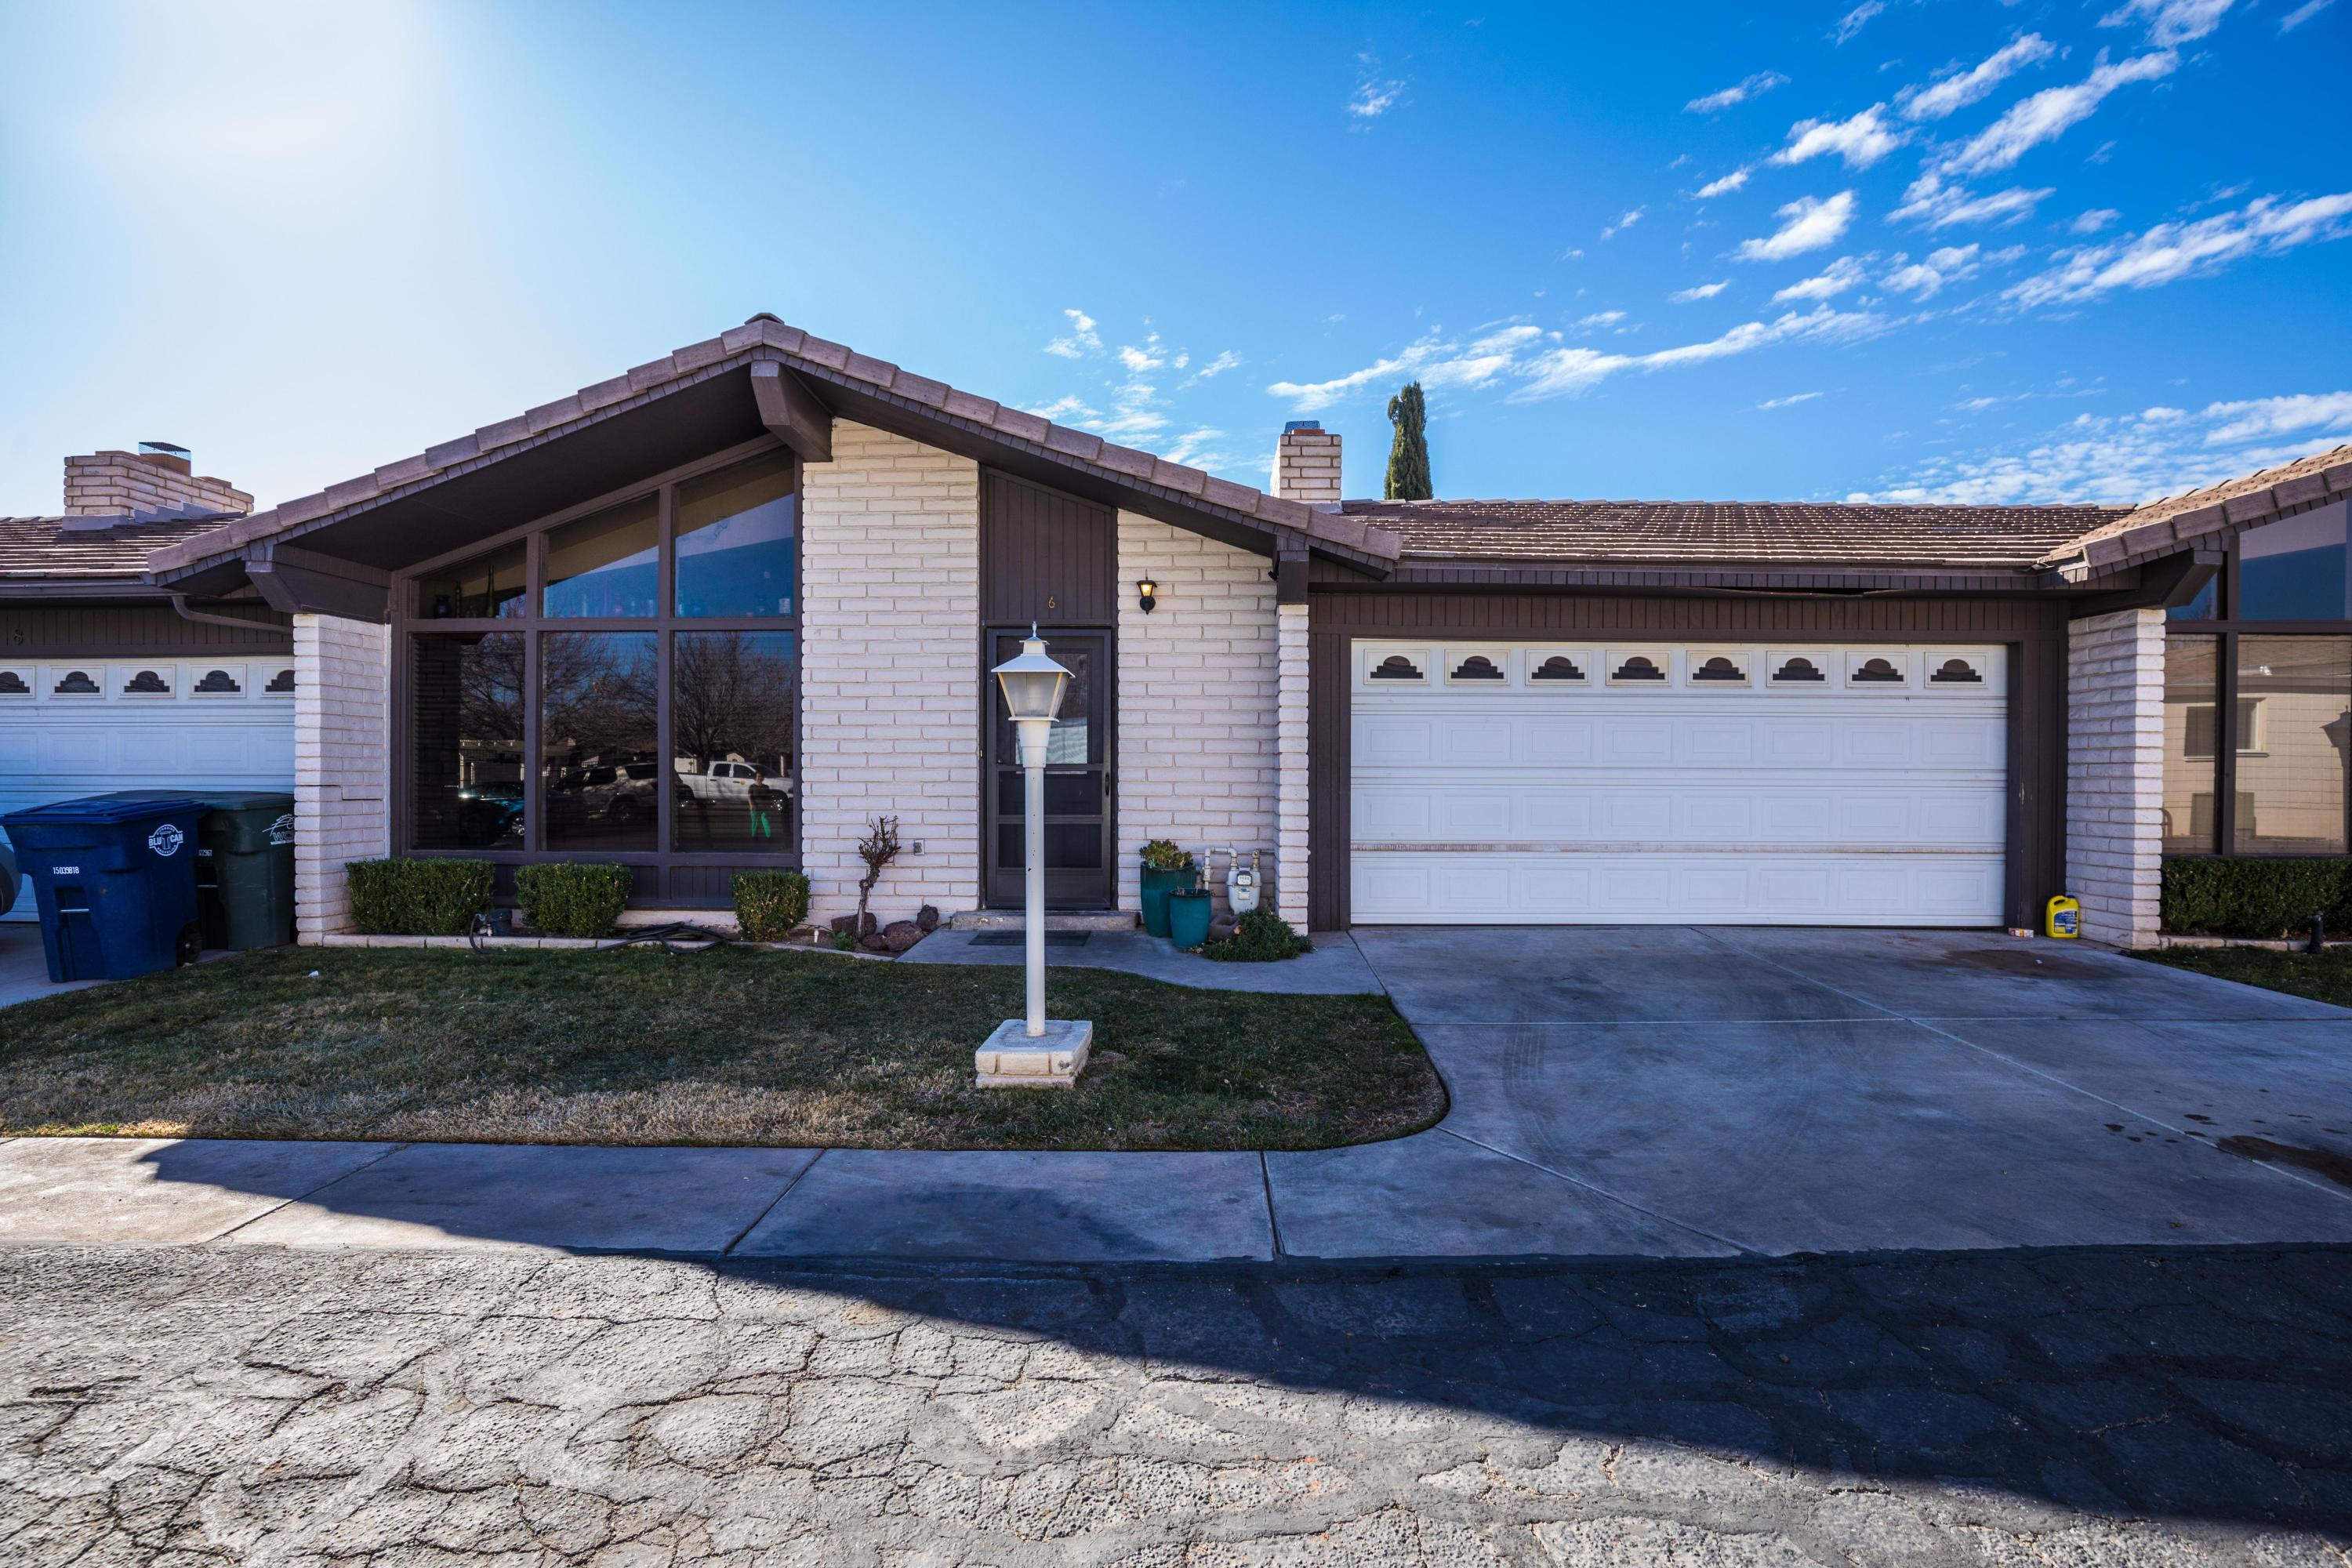 55 E 700 S Unit 6, St George Ut 84770